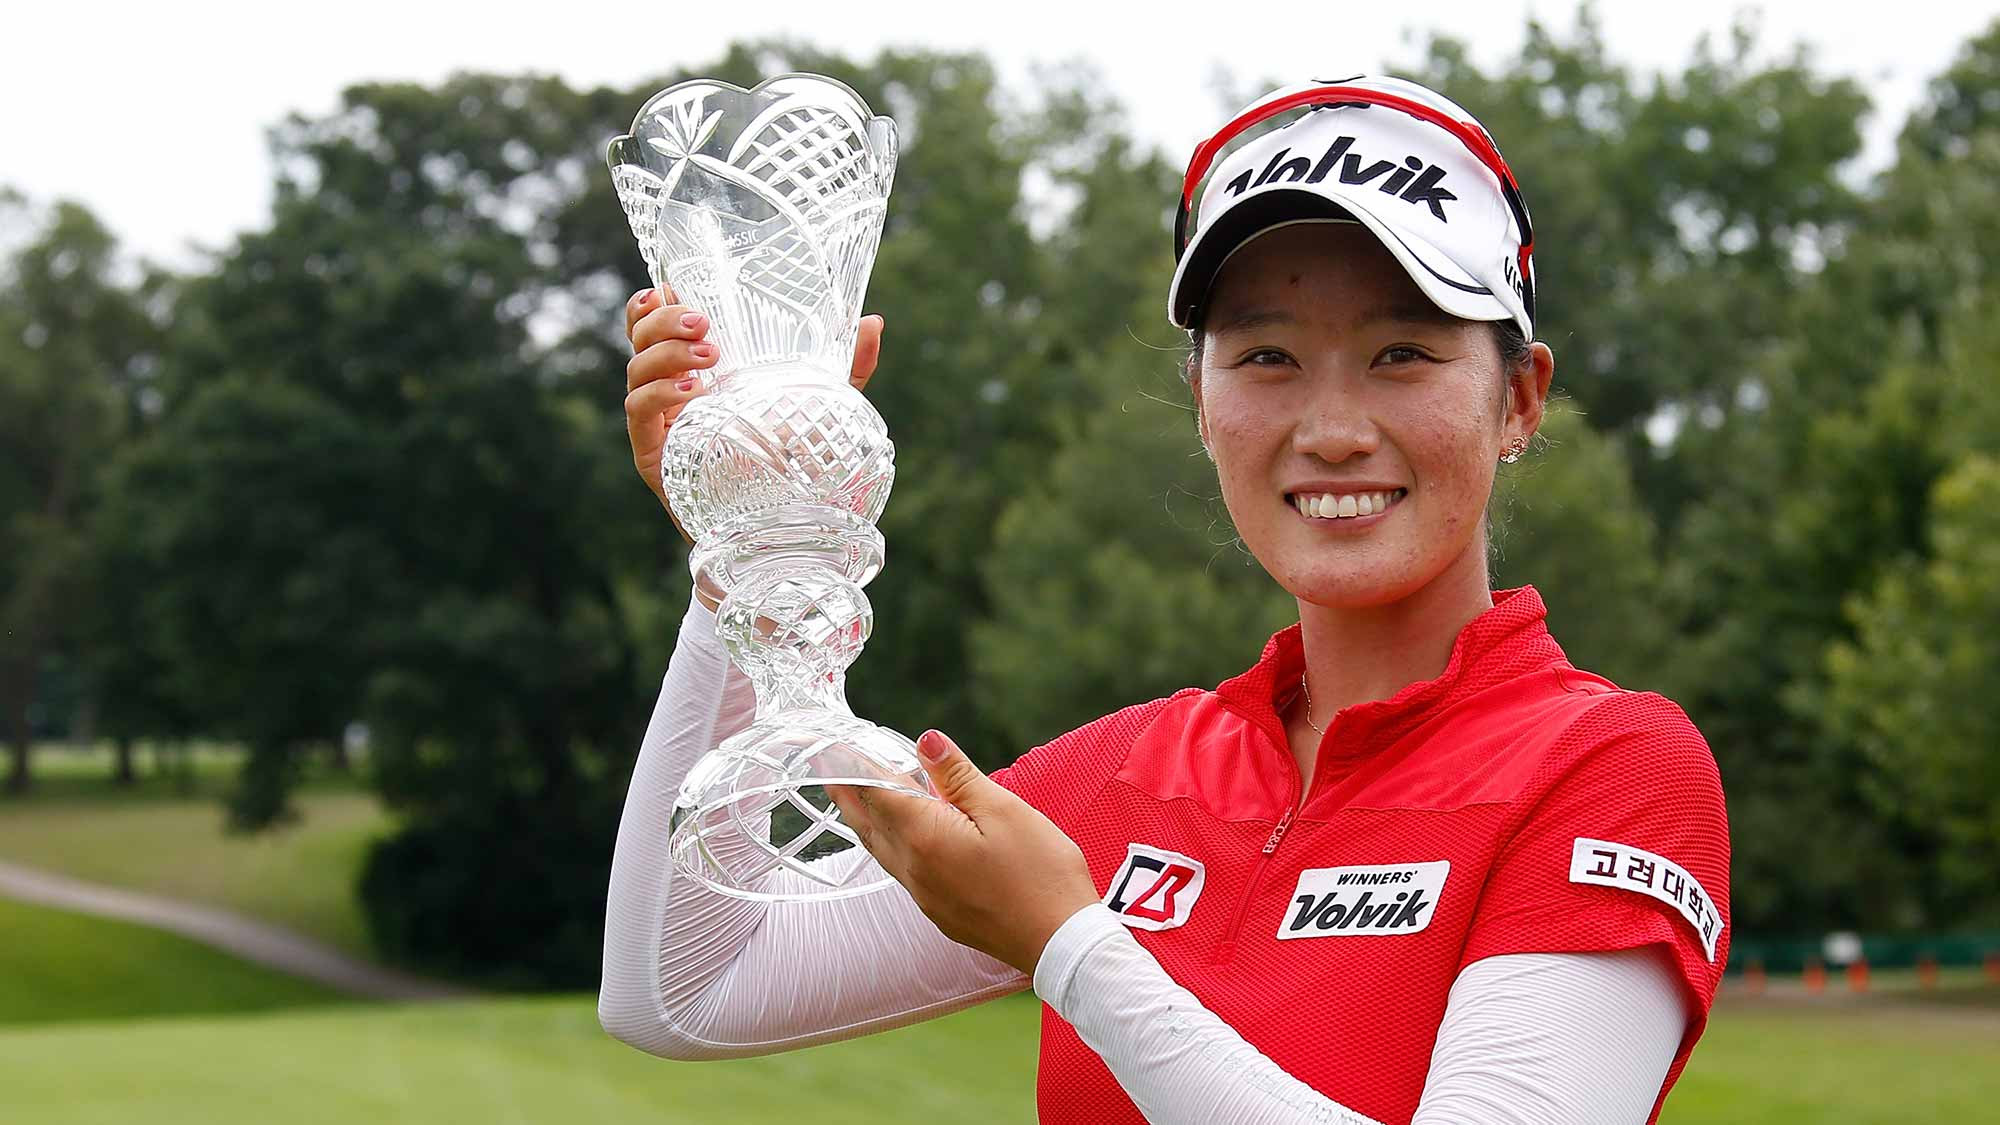 Defending champion Chella Choi with the Maration trophy